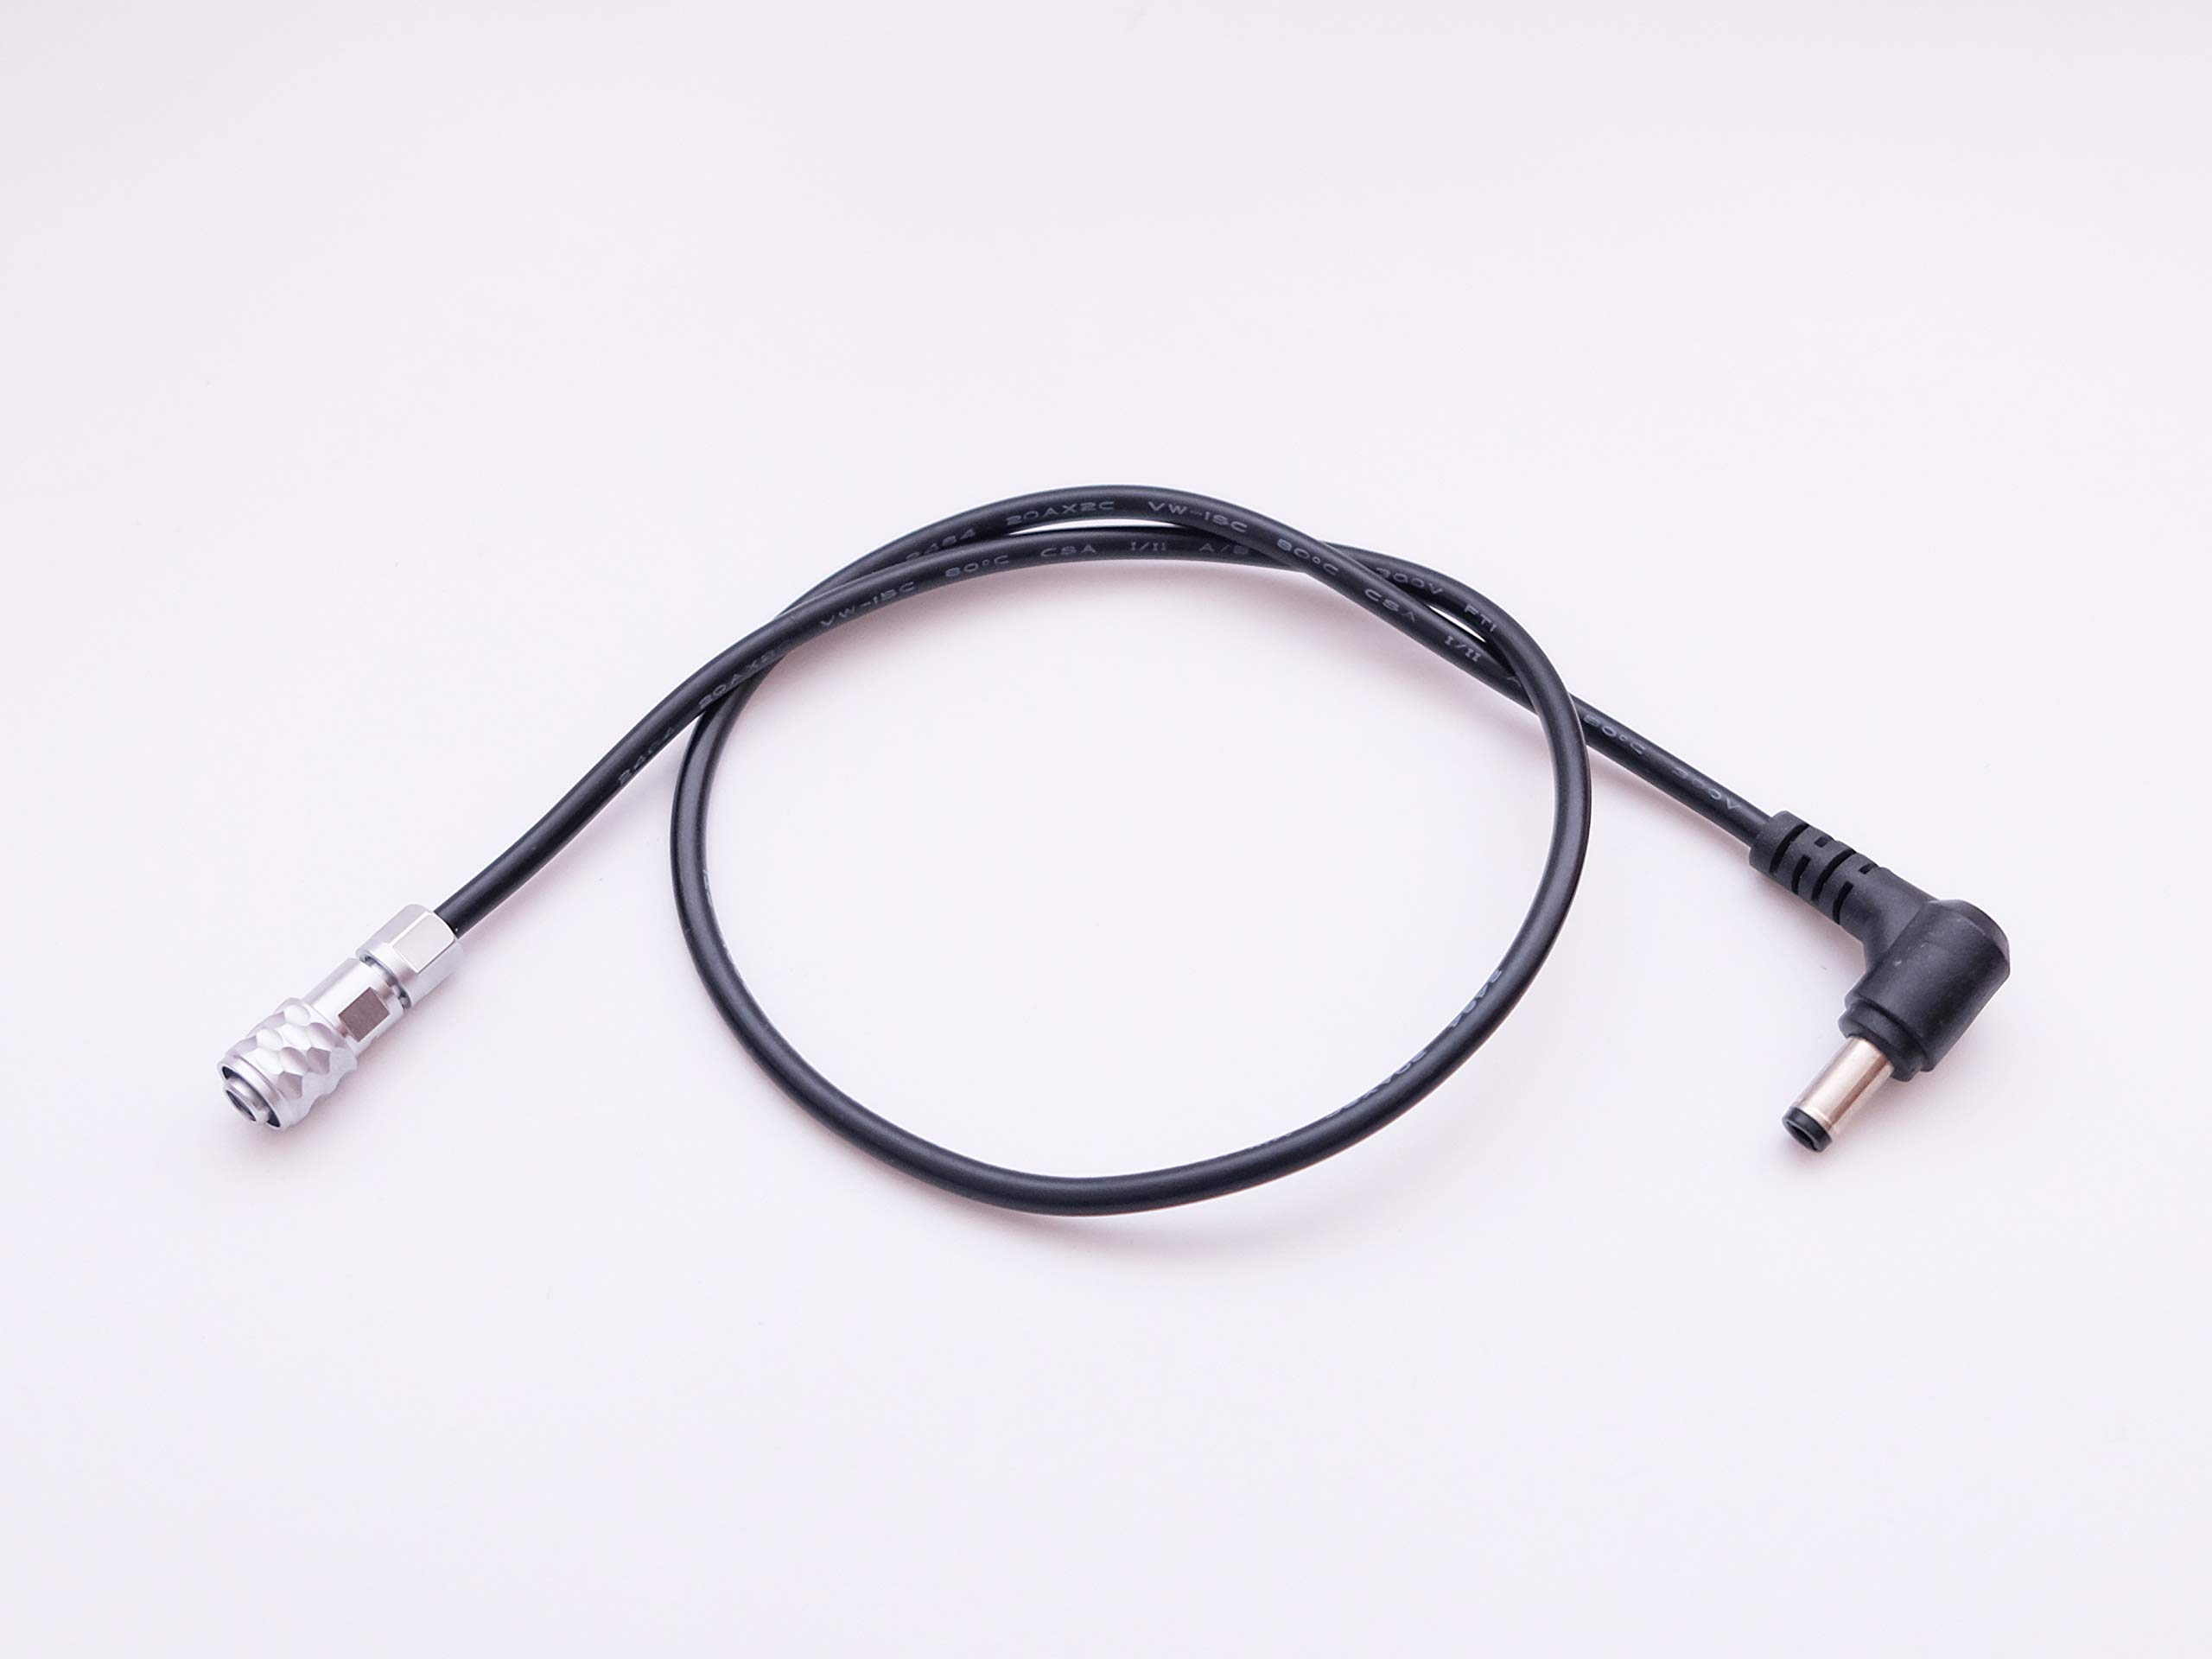 DC 5.5/2.mm Right Angled Power Cable for BMPCC 4K Blackmagic Pocket Cinema Camera